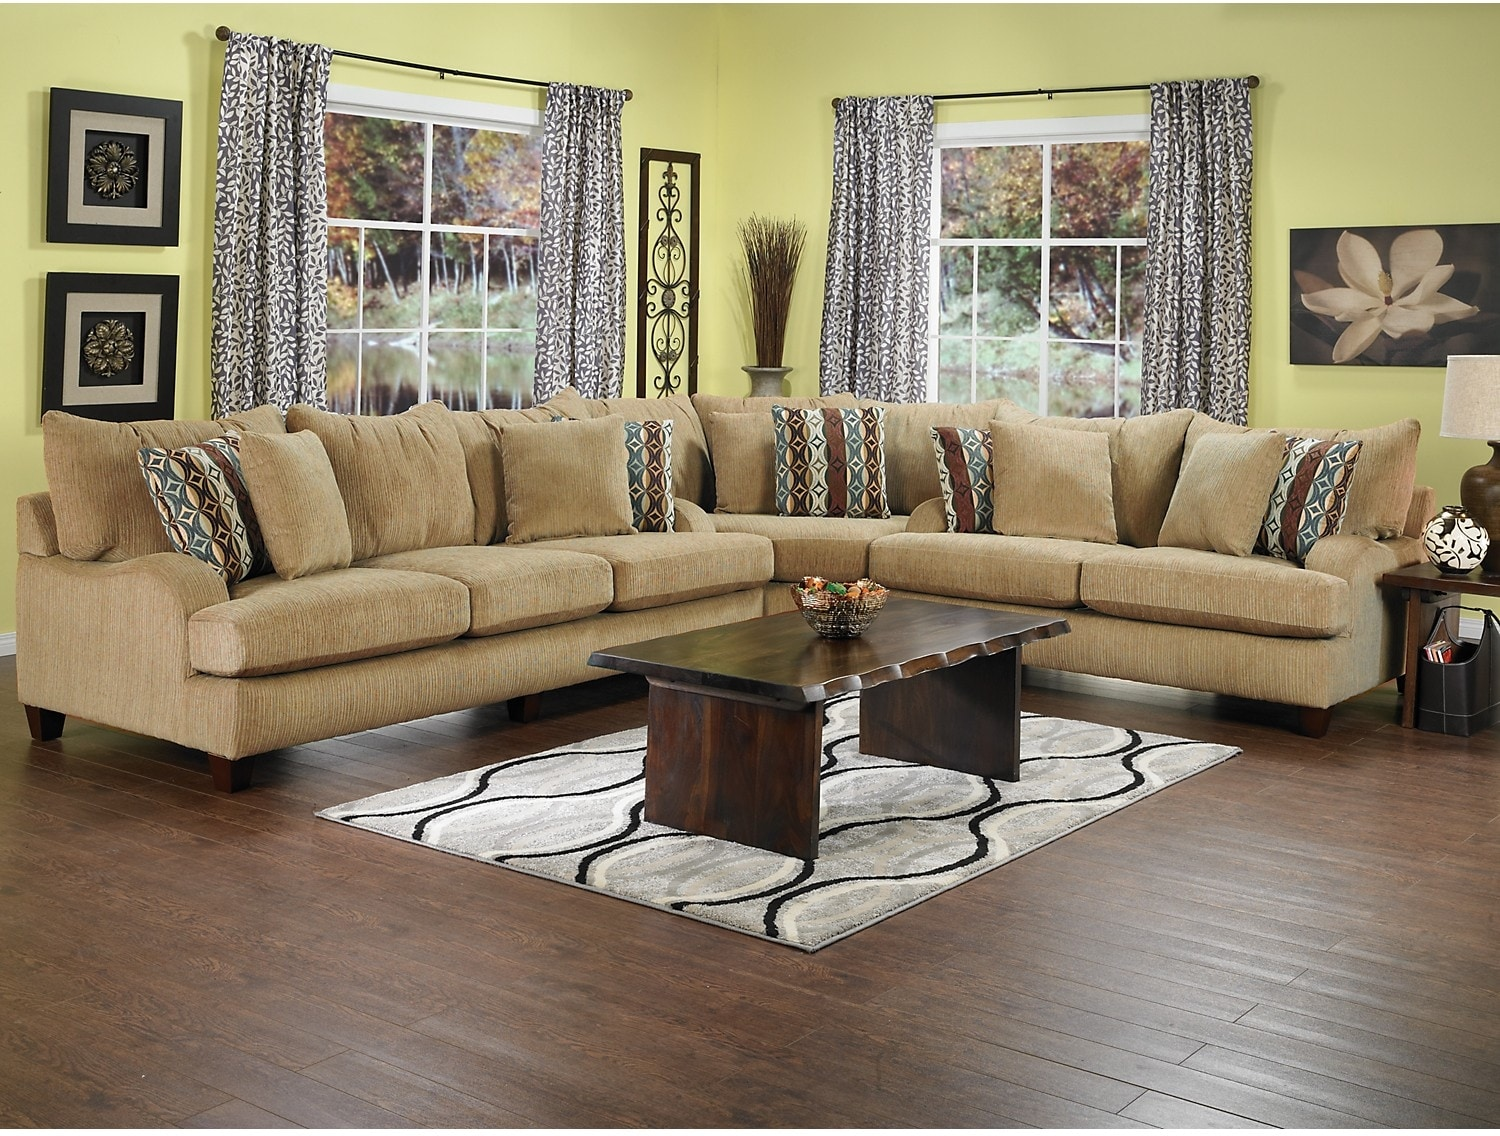 Putty chenille sectional beige the brick for Living room sectional furniture